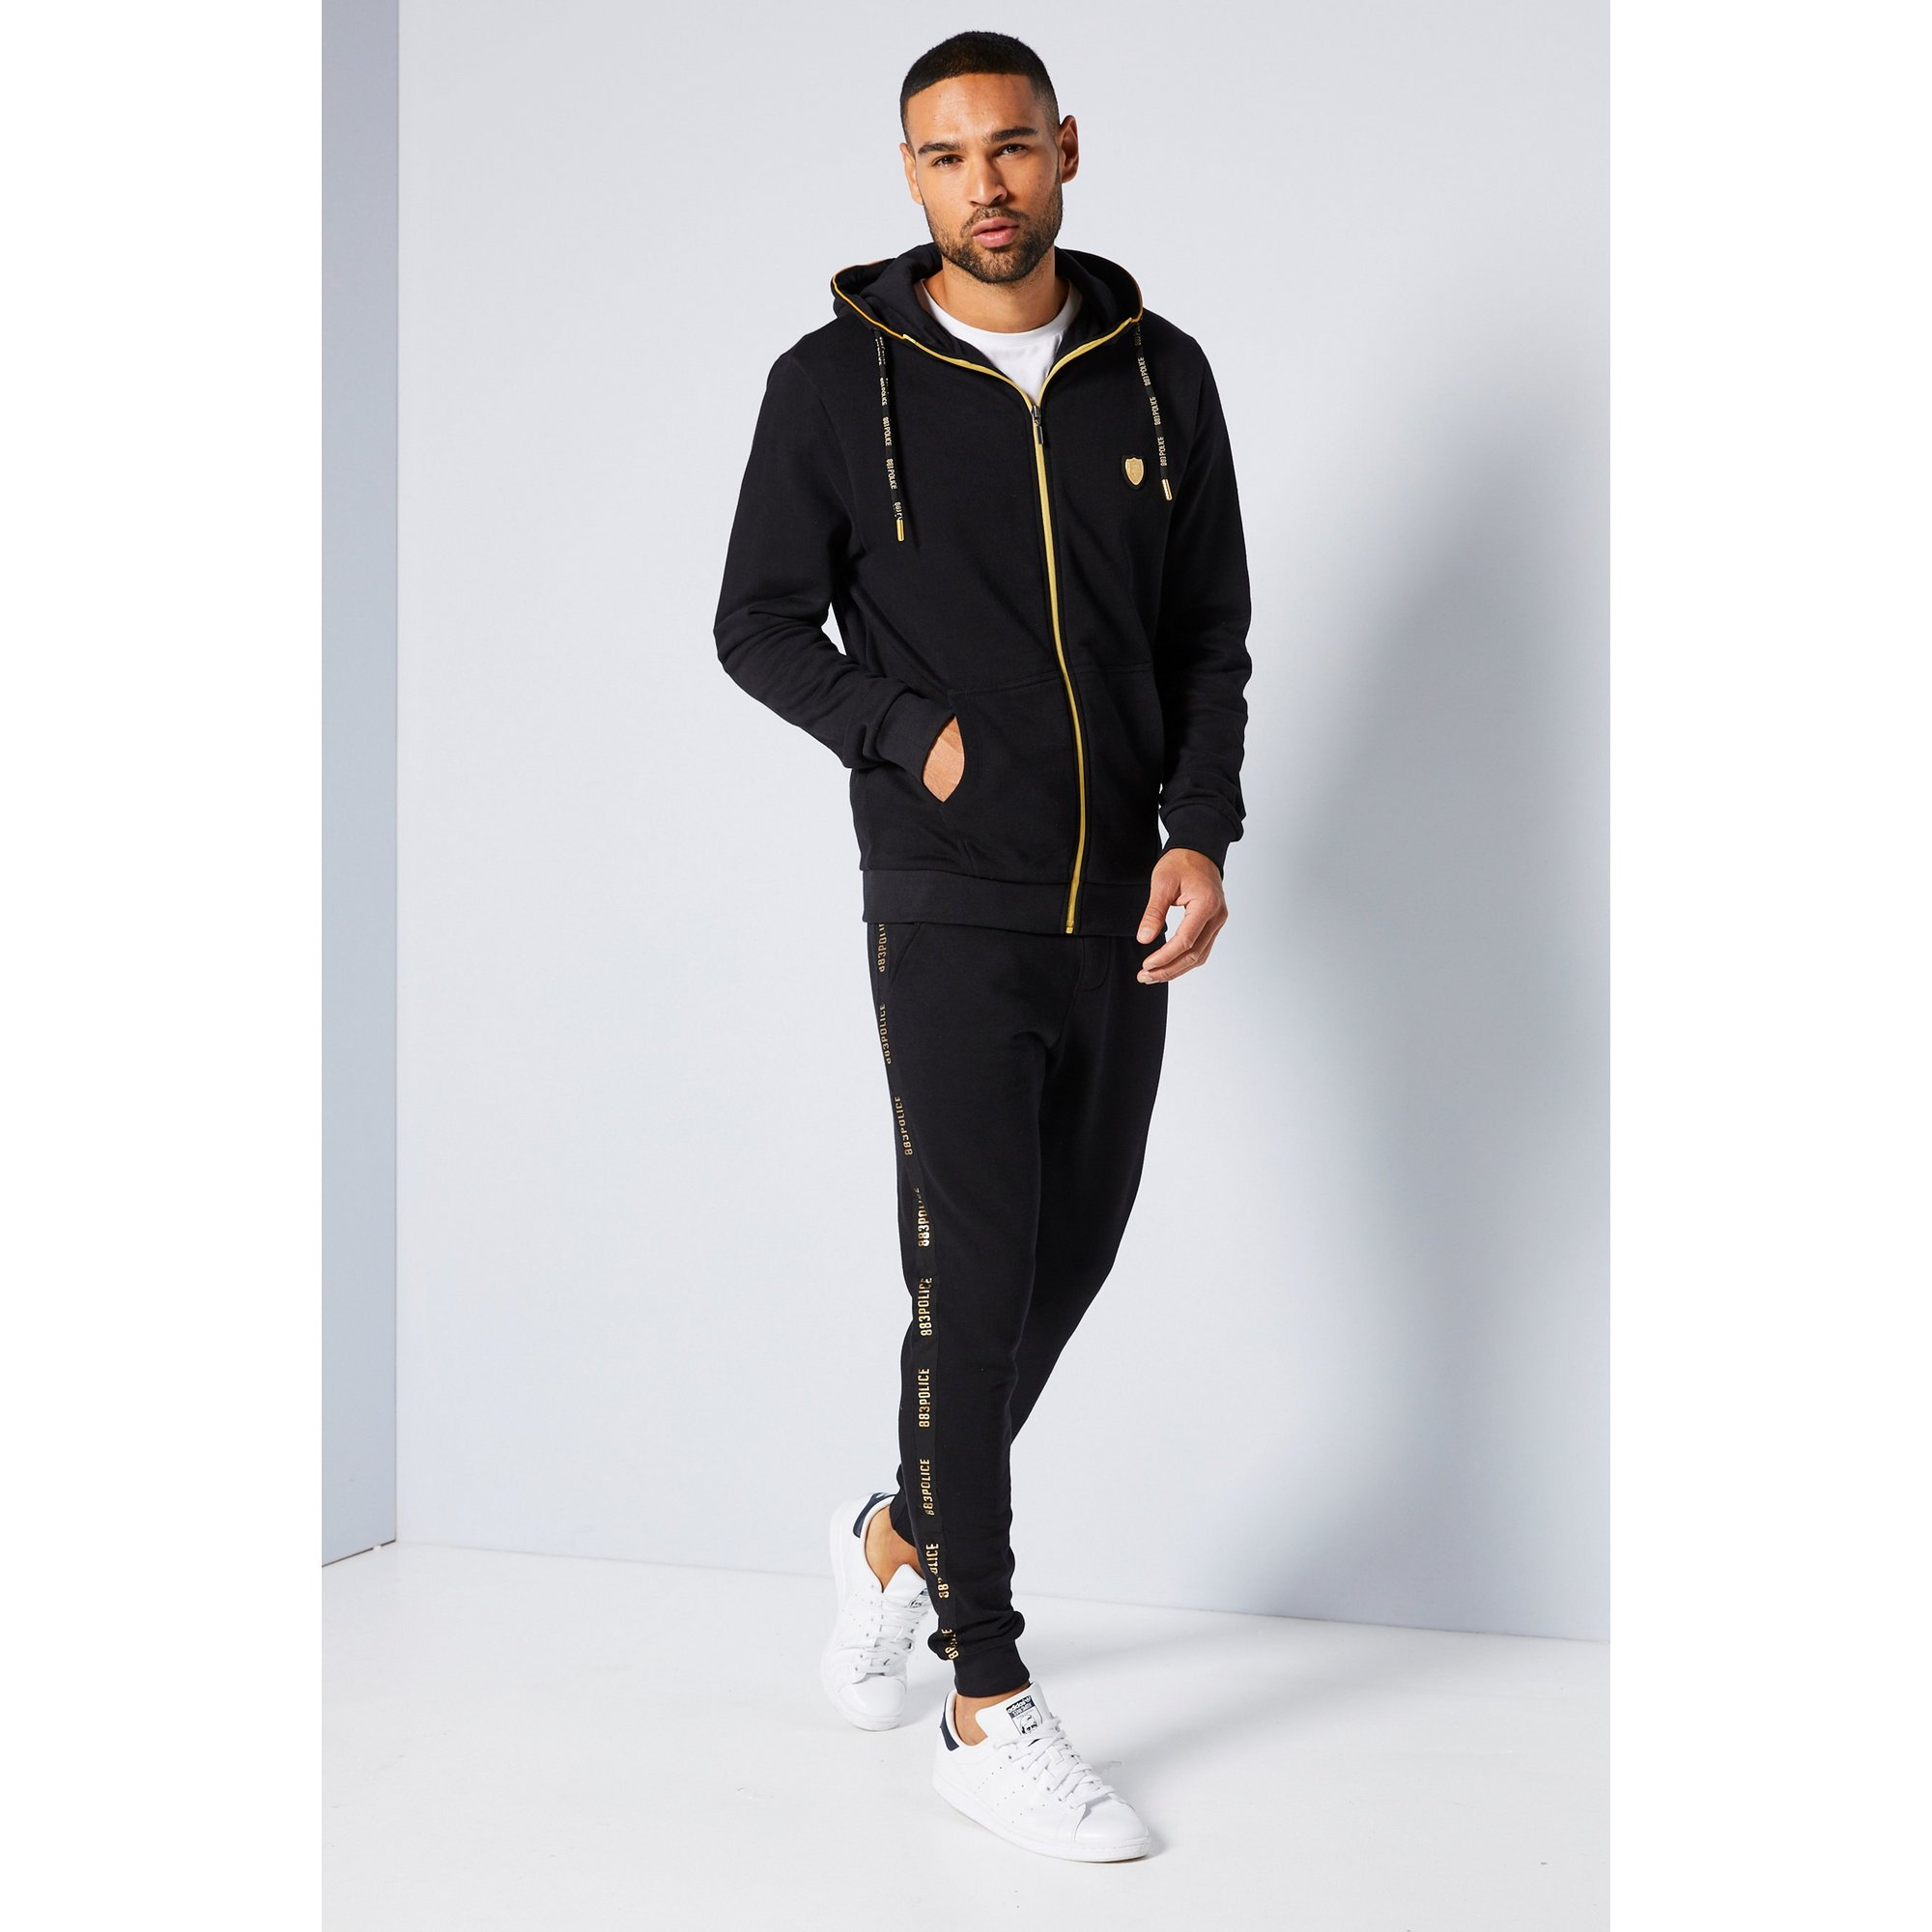 Image of 883 Police Taping Tracksuit